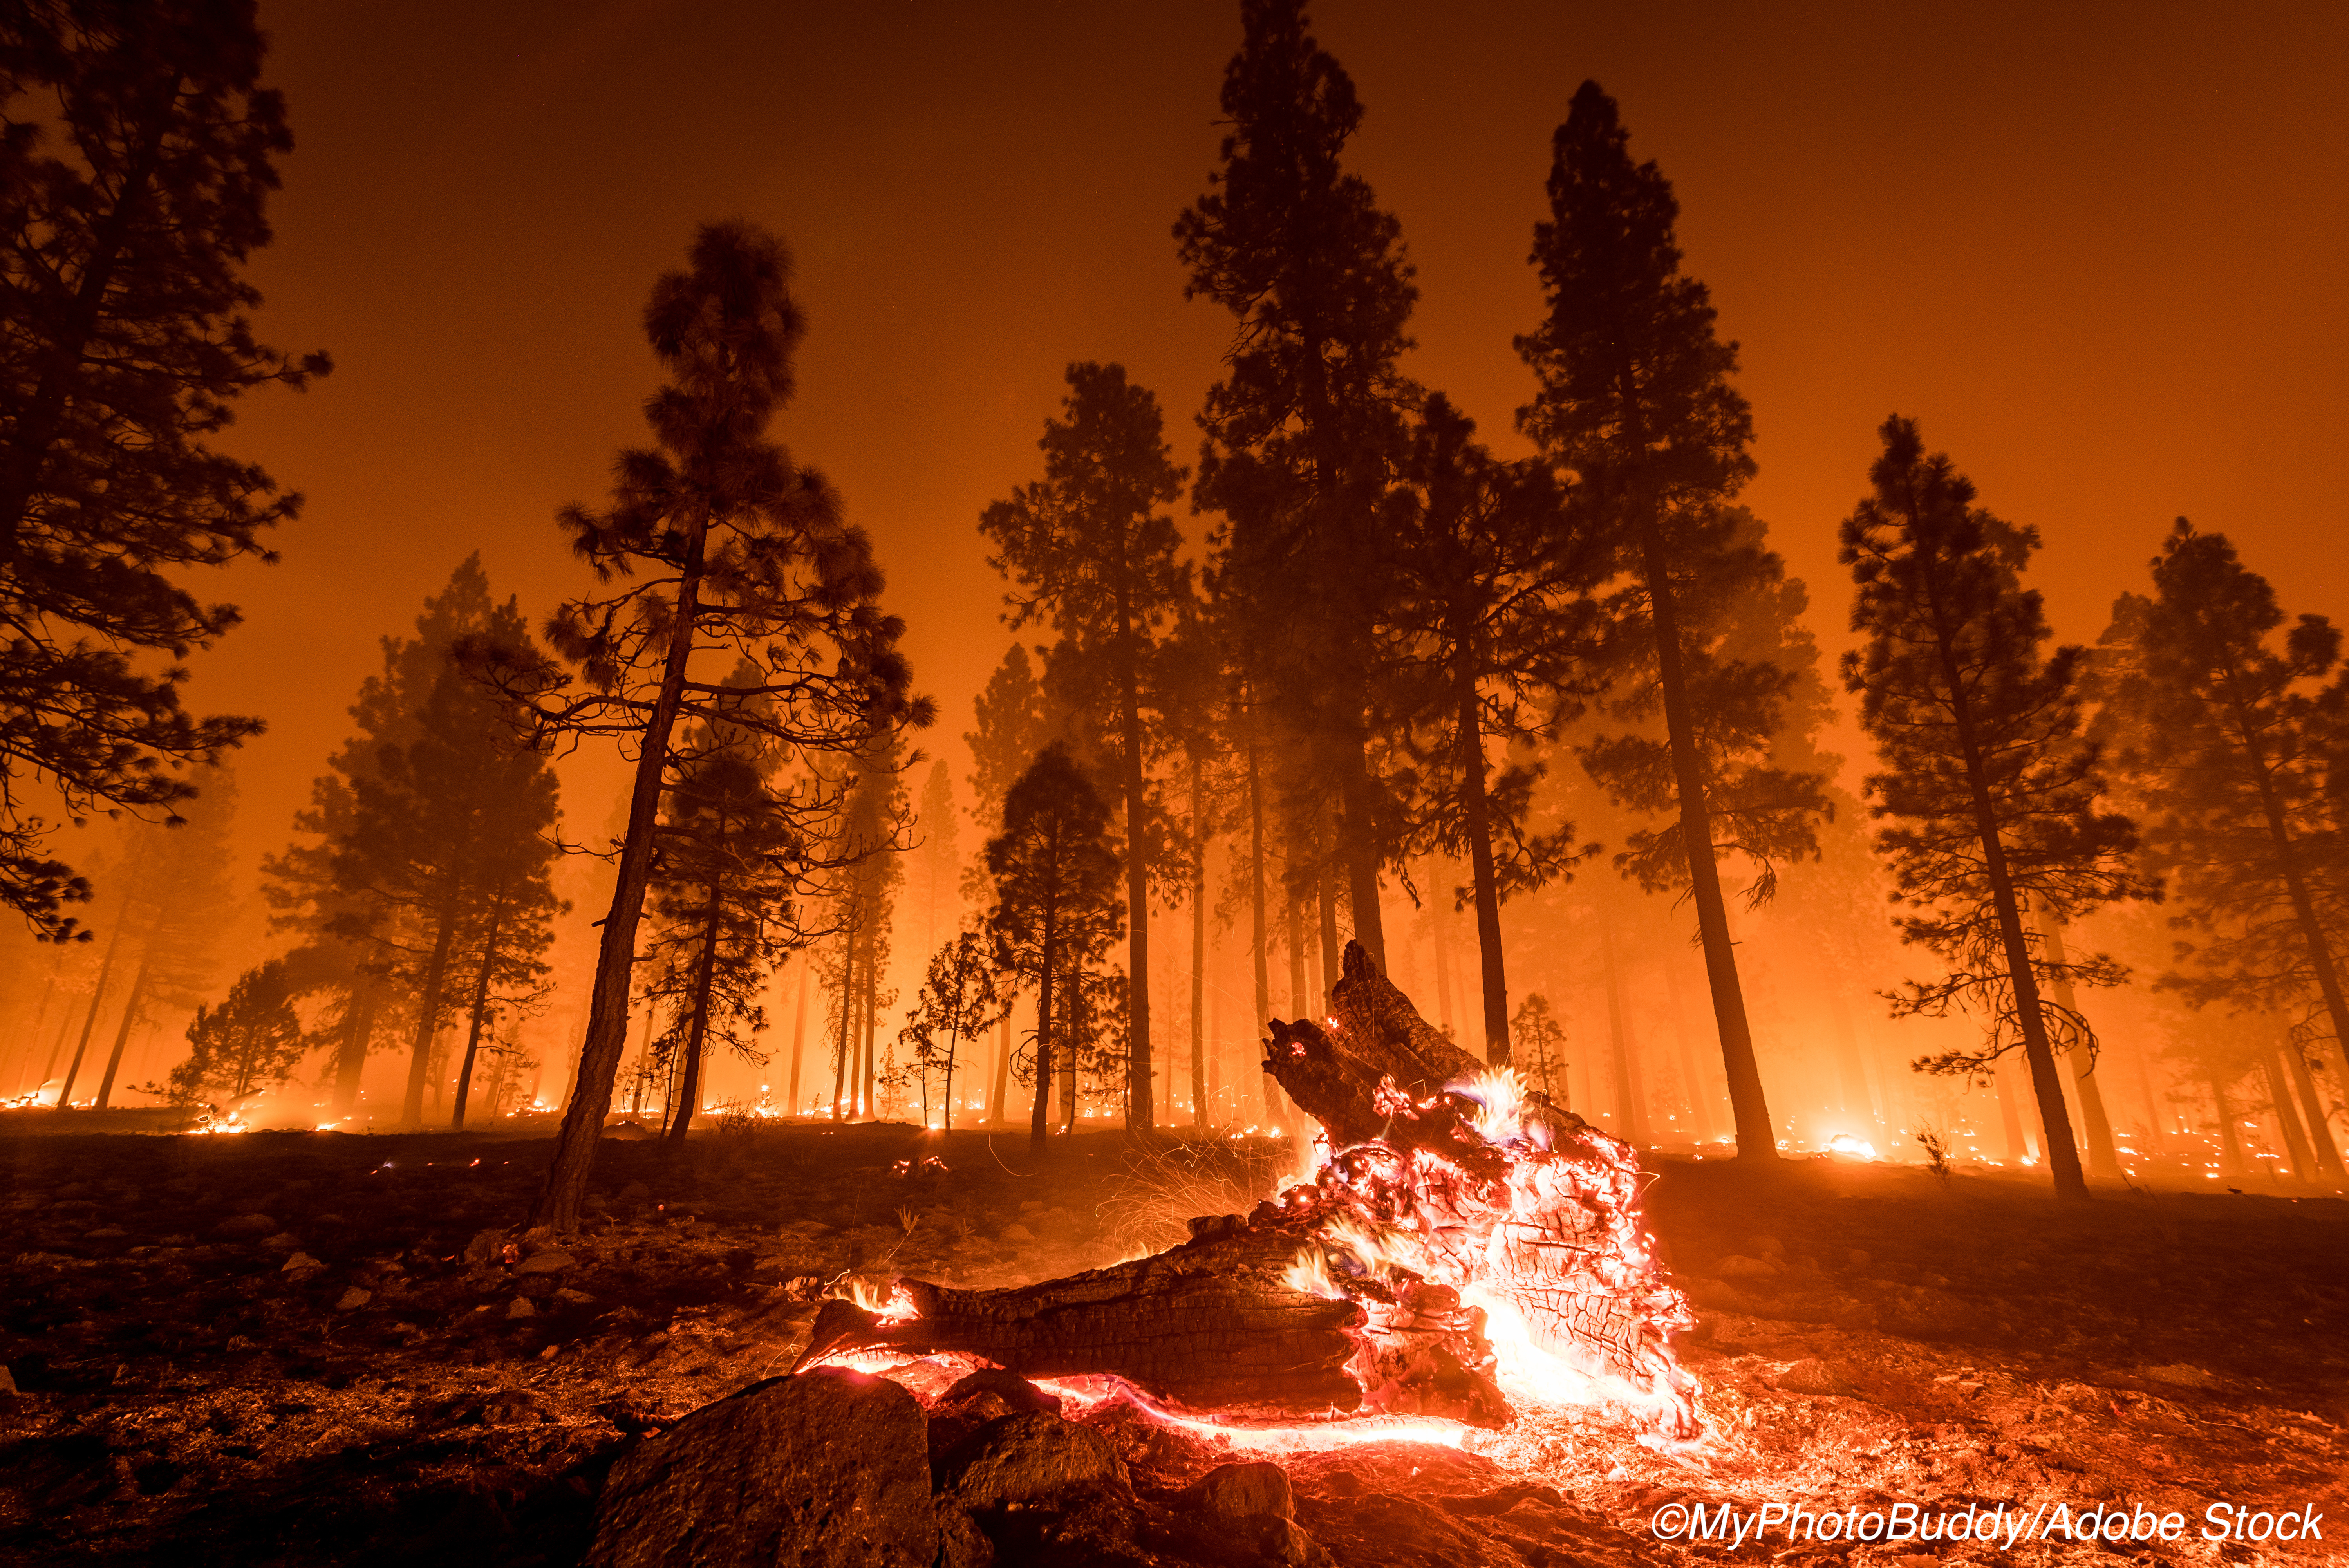 The West Is Burning—Is This a Healthcare Crisis?